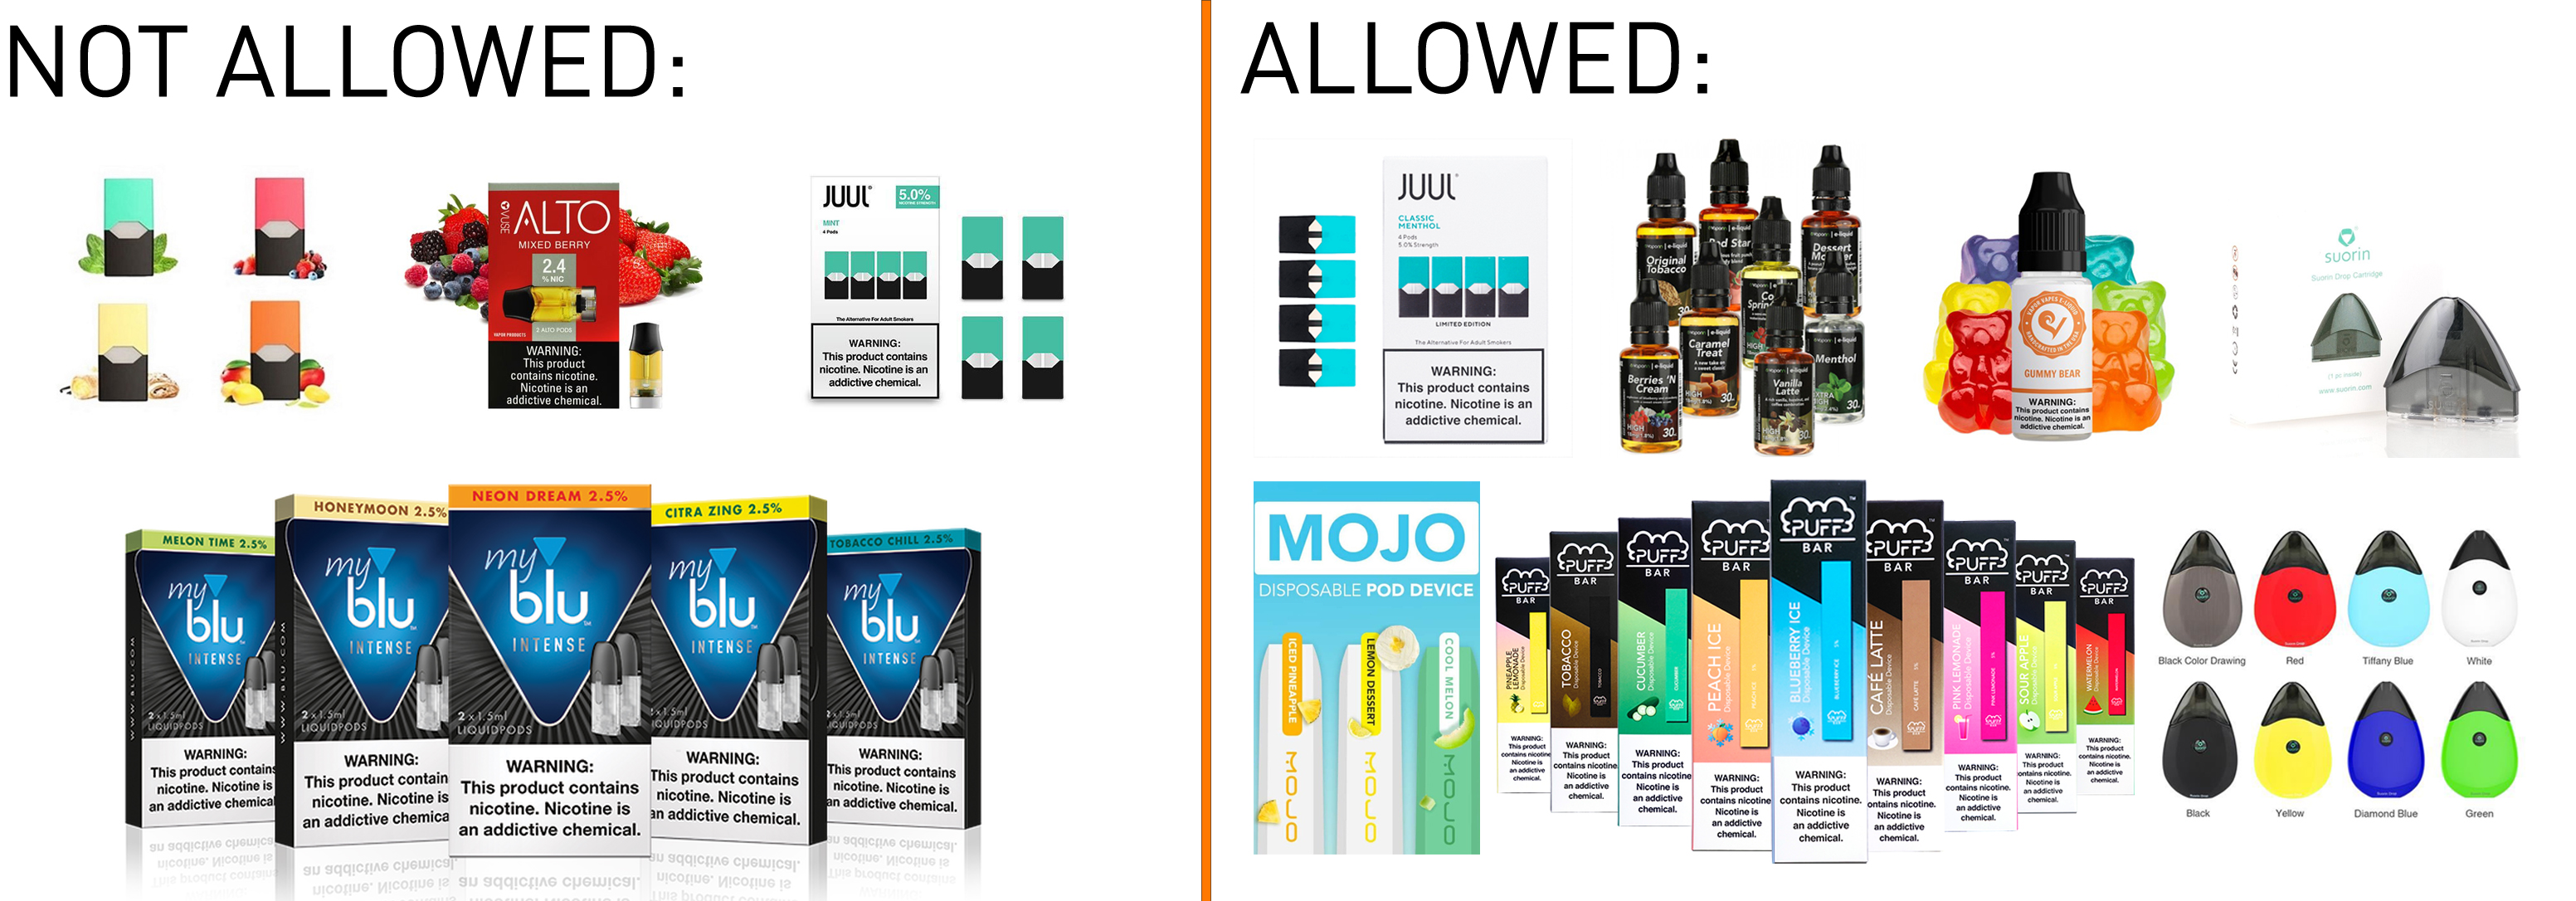 Not allowed products including Blu, Alto, and JUUL mint and fruit flavors as well as allowed products like puff bar, menthol JUUL, Suorin, and refillable vape juices